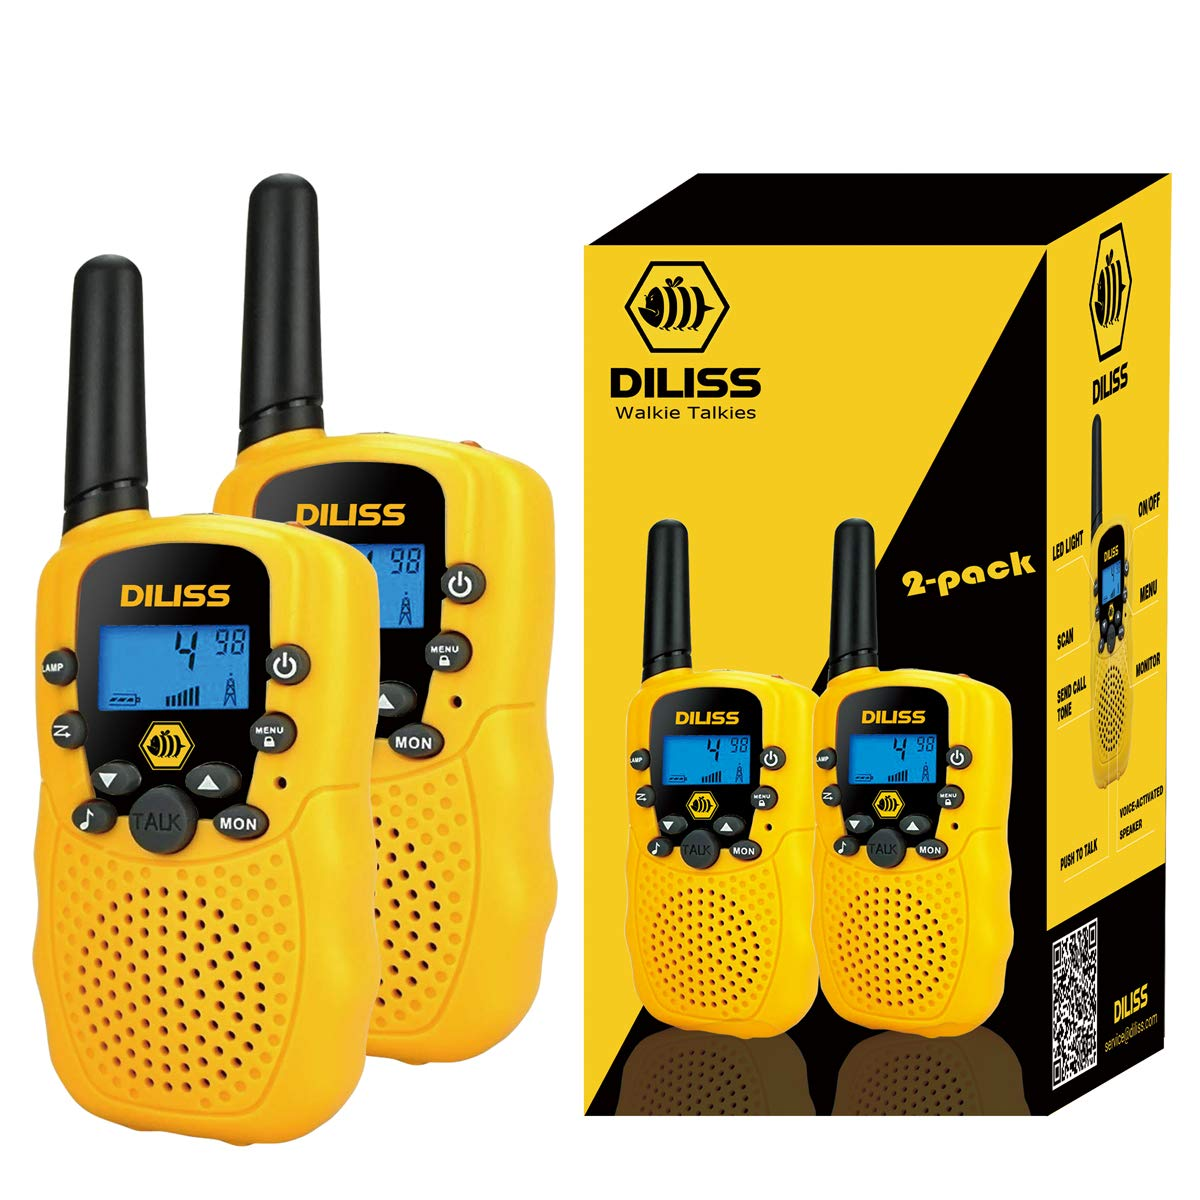 DilissToys Walkie Talkies for Kids Voice Activated Walkie Talkies for Adults and Kids 3 Mile Range 2 Way Radio Walkie Talkies Built in Flash Light 2 Pack Yellow